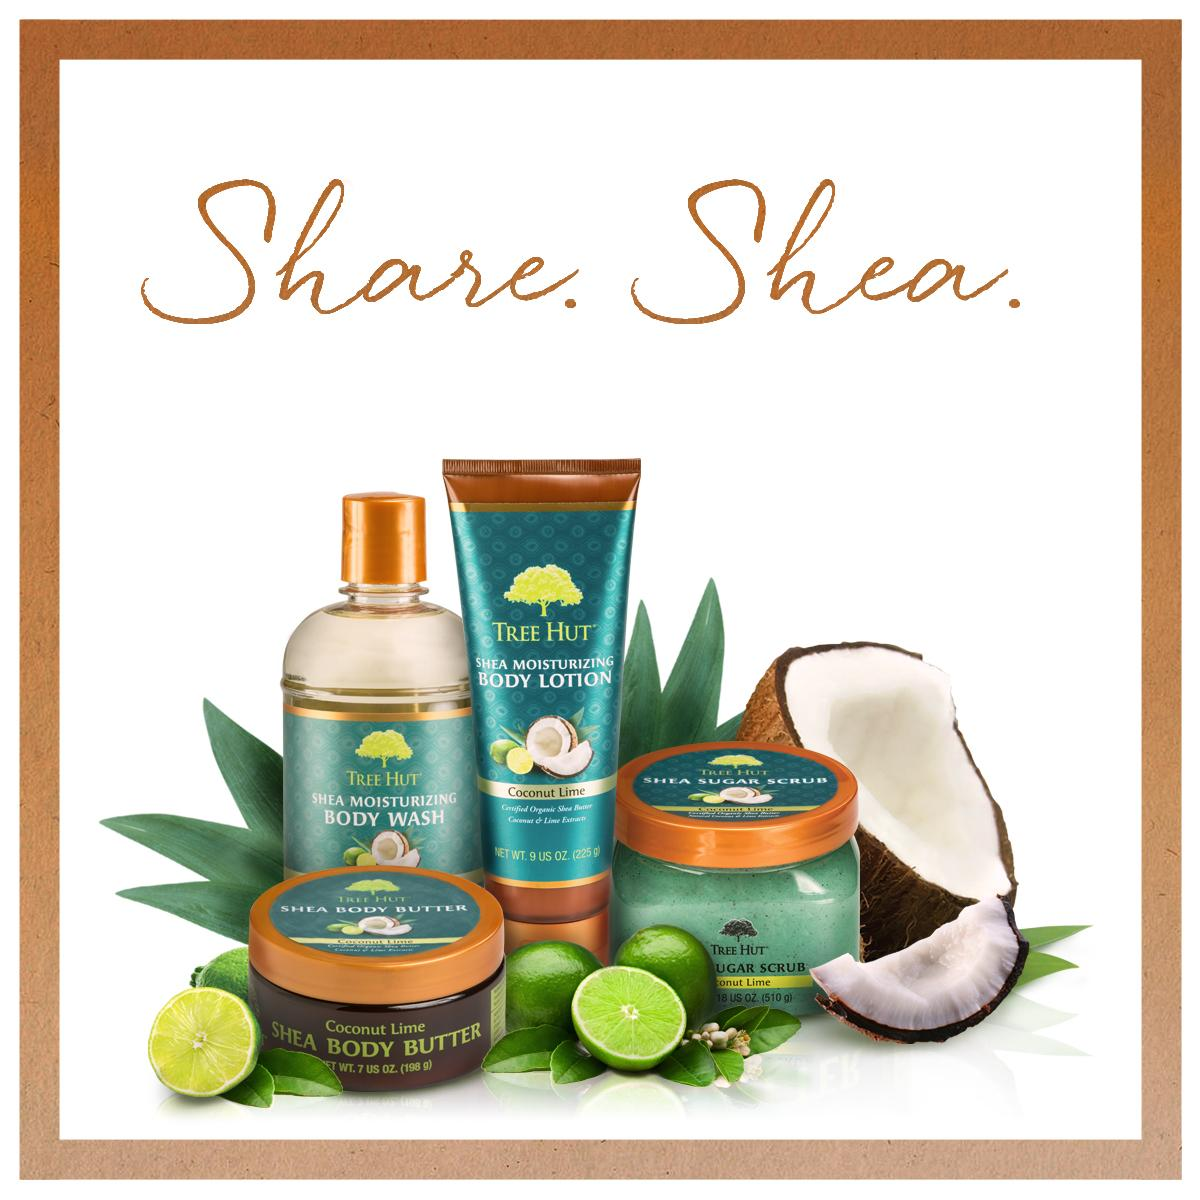 Retweet this photo for a chance to win #TreeHut Coconut Lime Body Butter! http://t.co/wcrG7fTl9Q